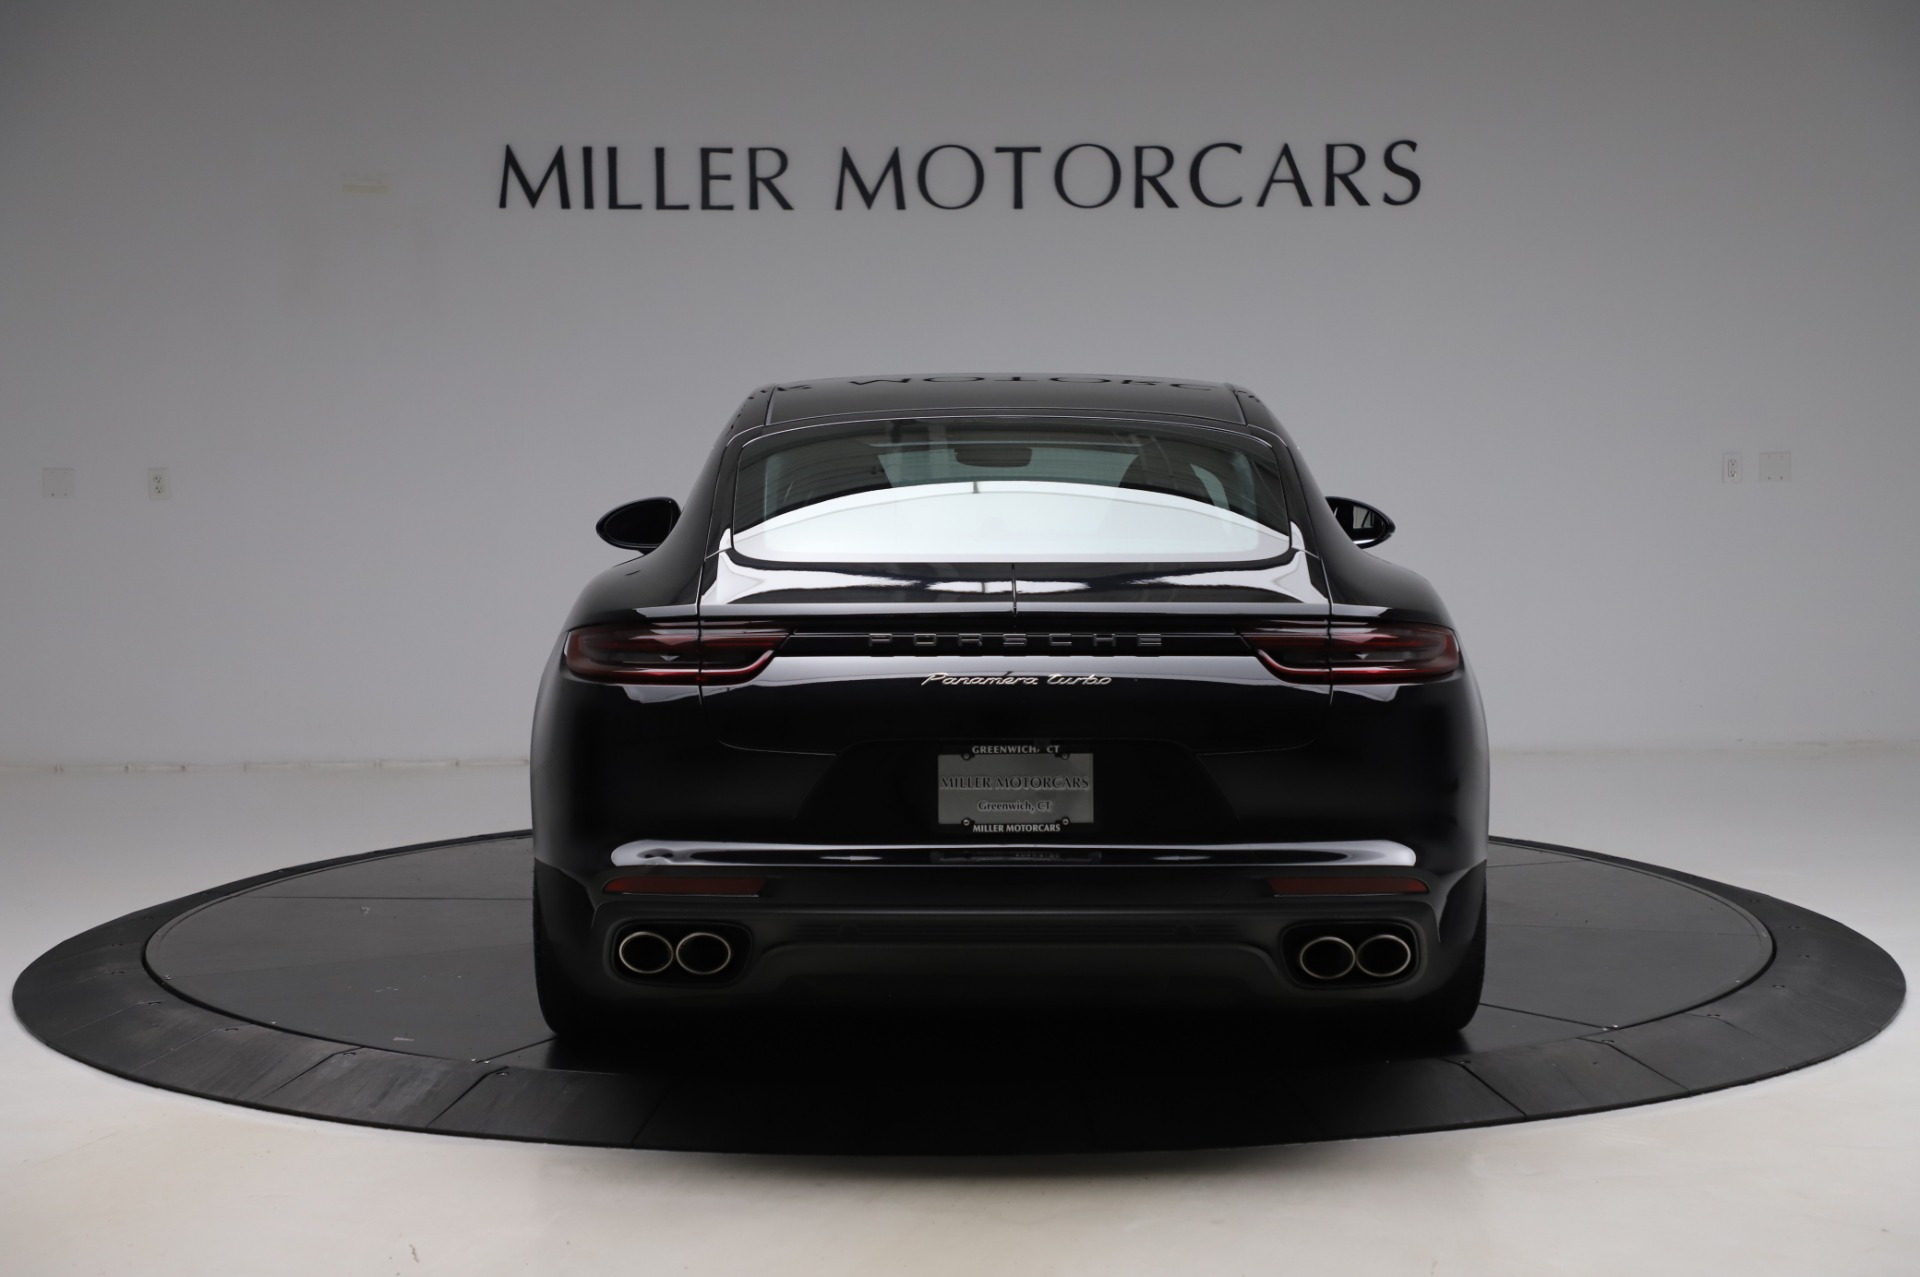 Pre Owned 2017 Porsche Panamera Turbo For Sale Miller Motorcars Stock B1514a